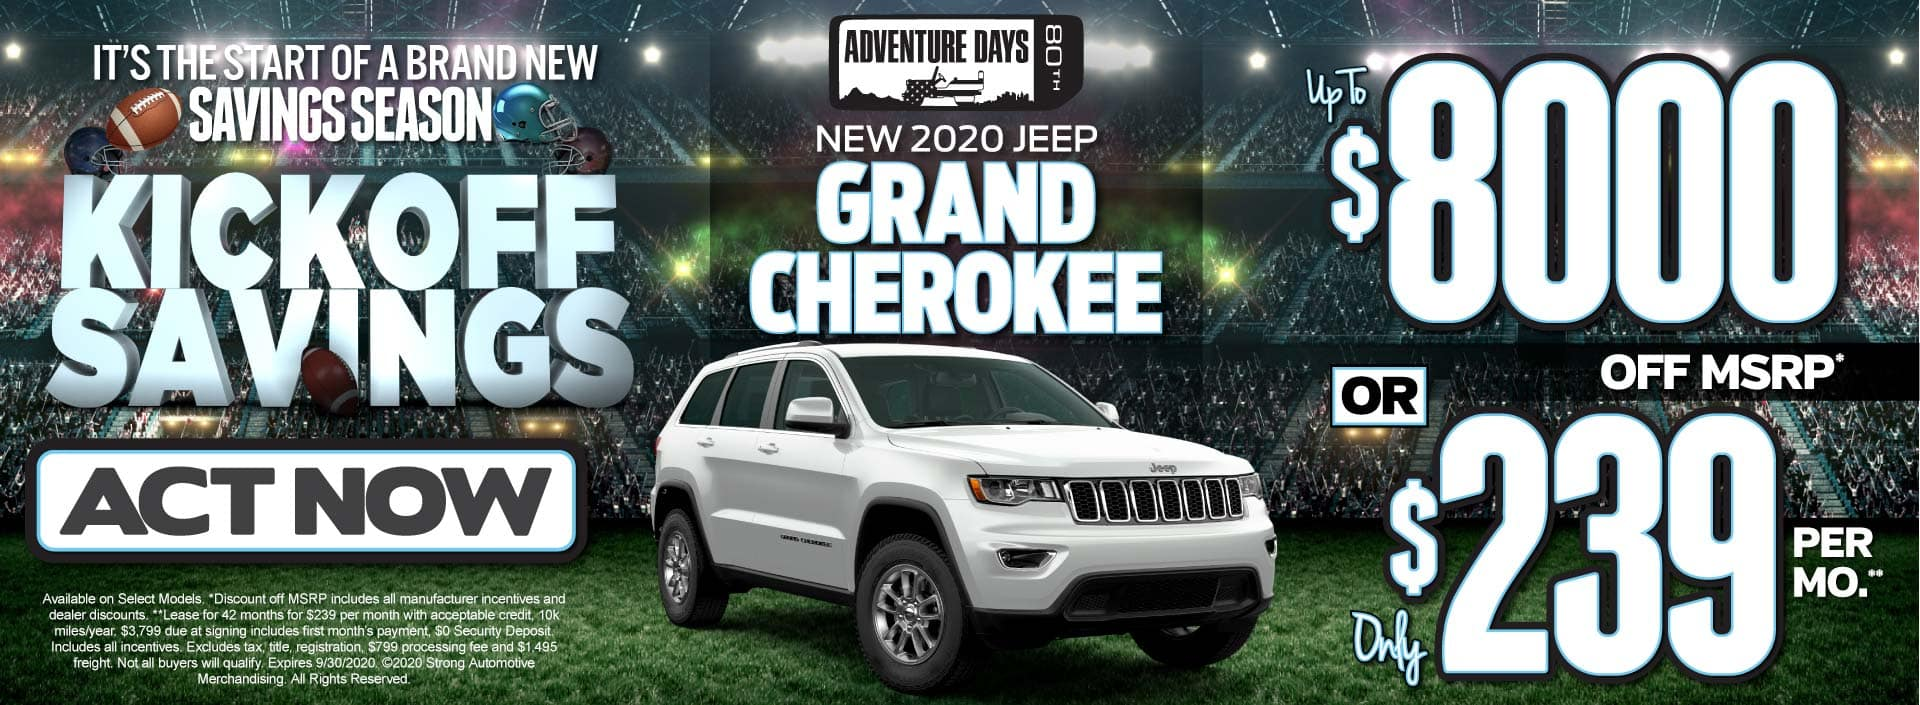 New 2020 Jeep Grand Cherokee up to $8000 Off MSRP - ACT NOW